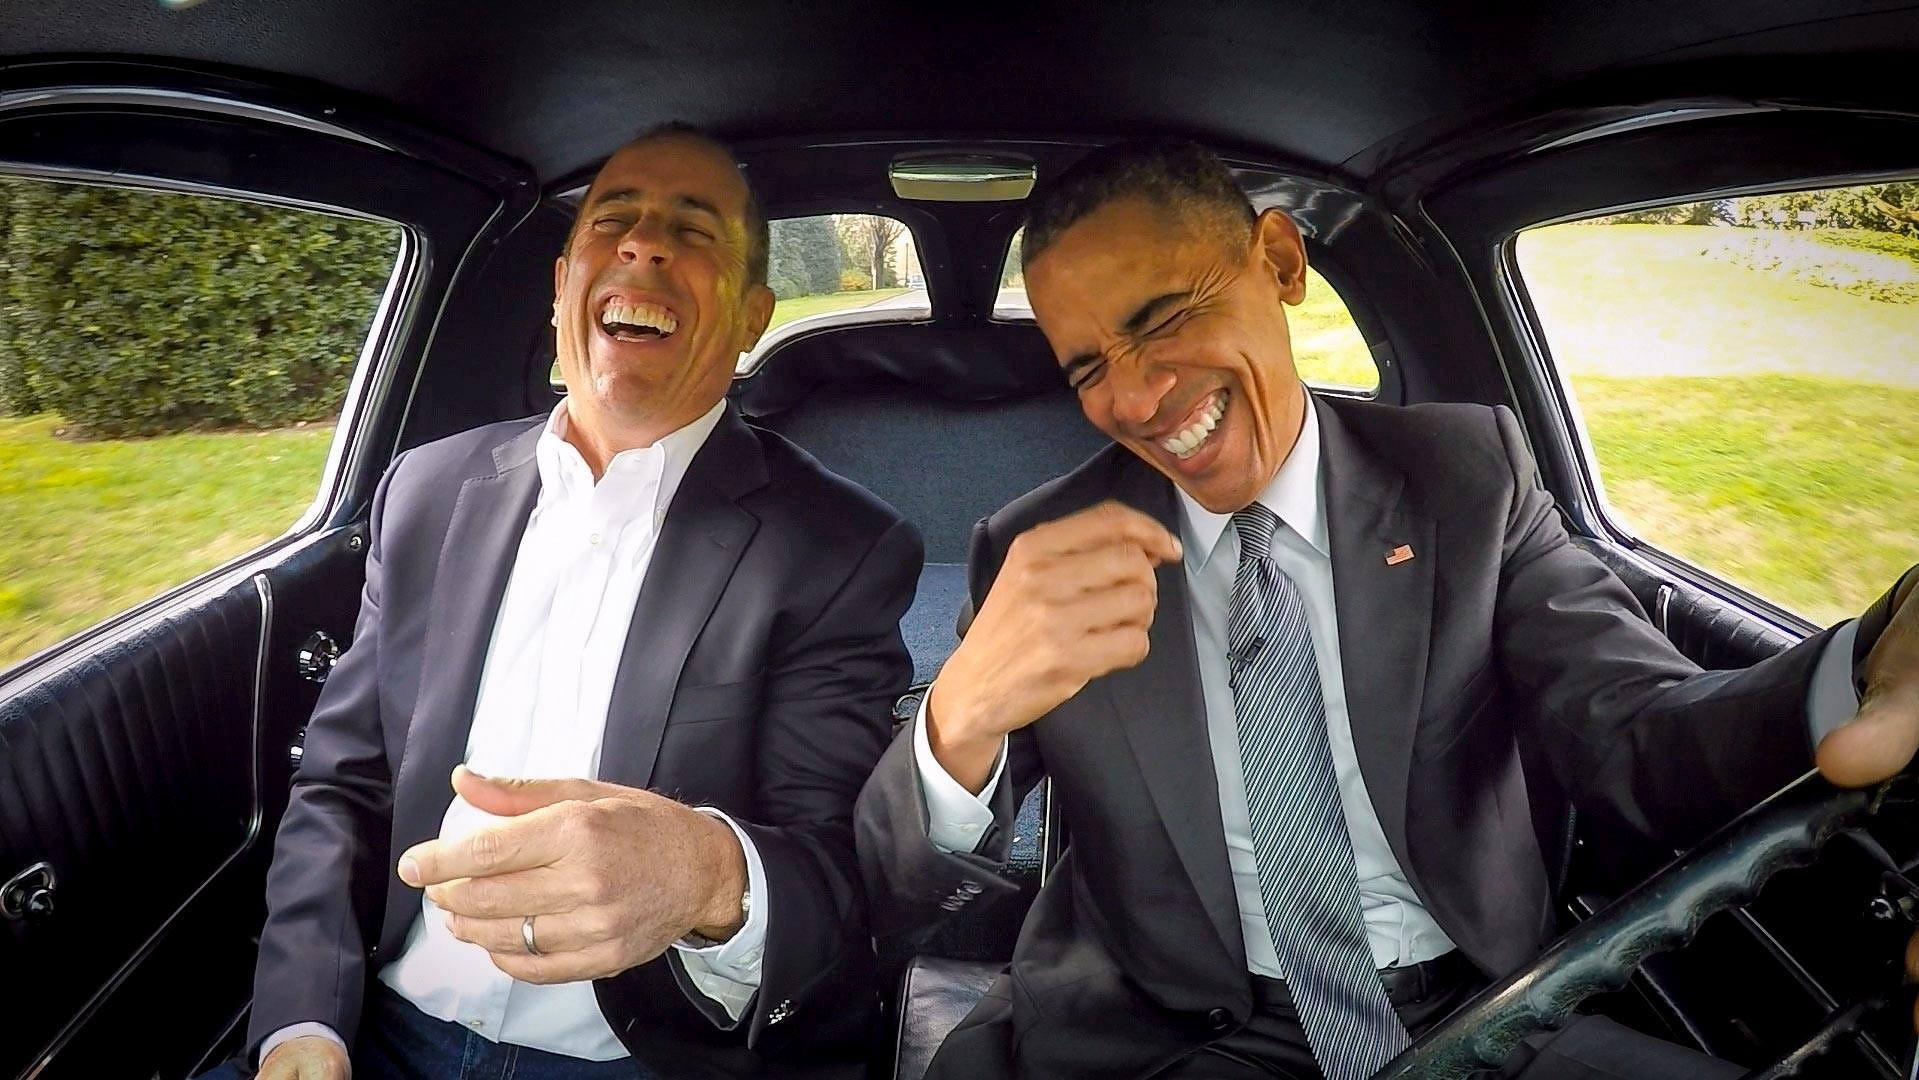 Comedians In Cars Getting Coffee Is Moving To Netflix